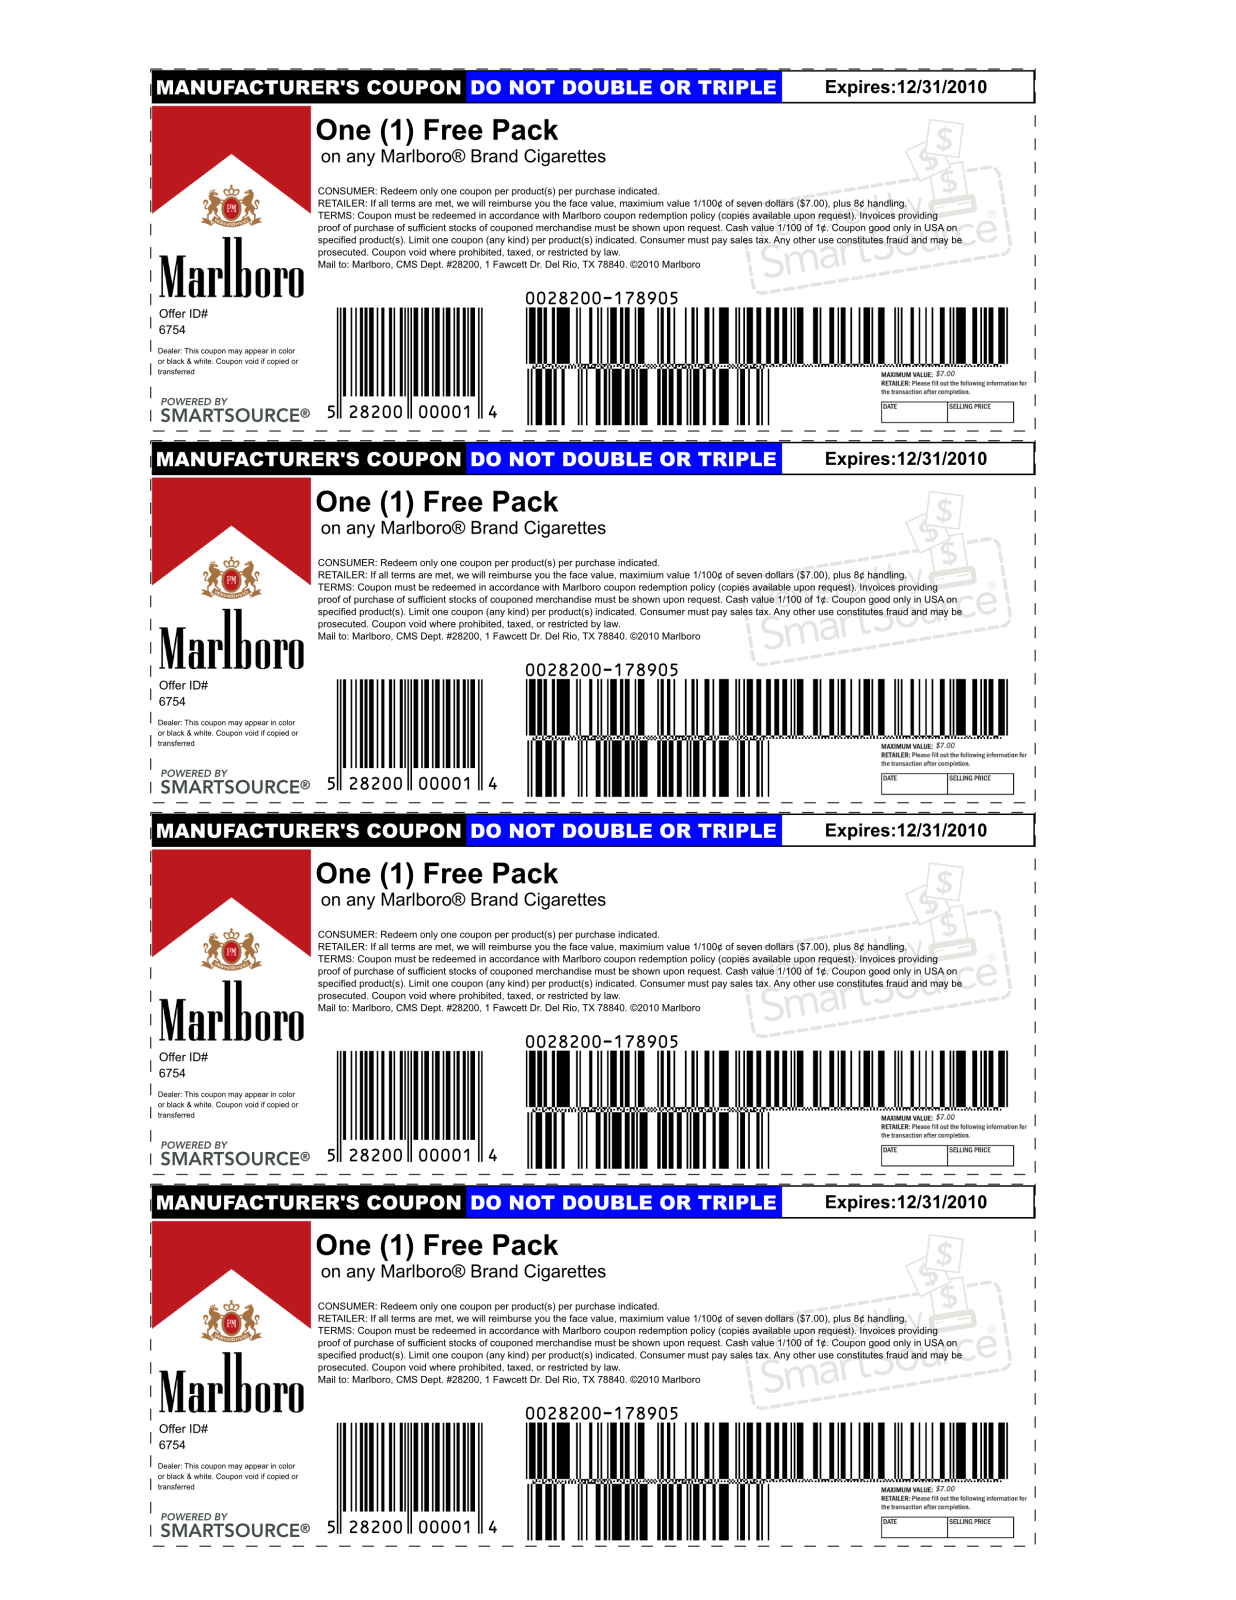 Oshkosh online printable coupons